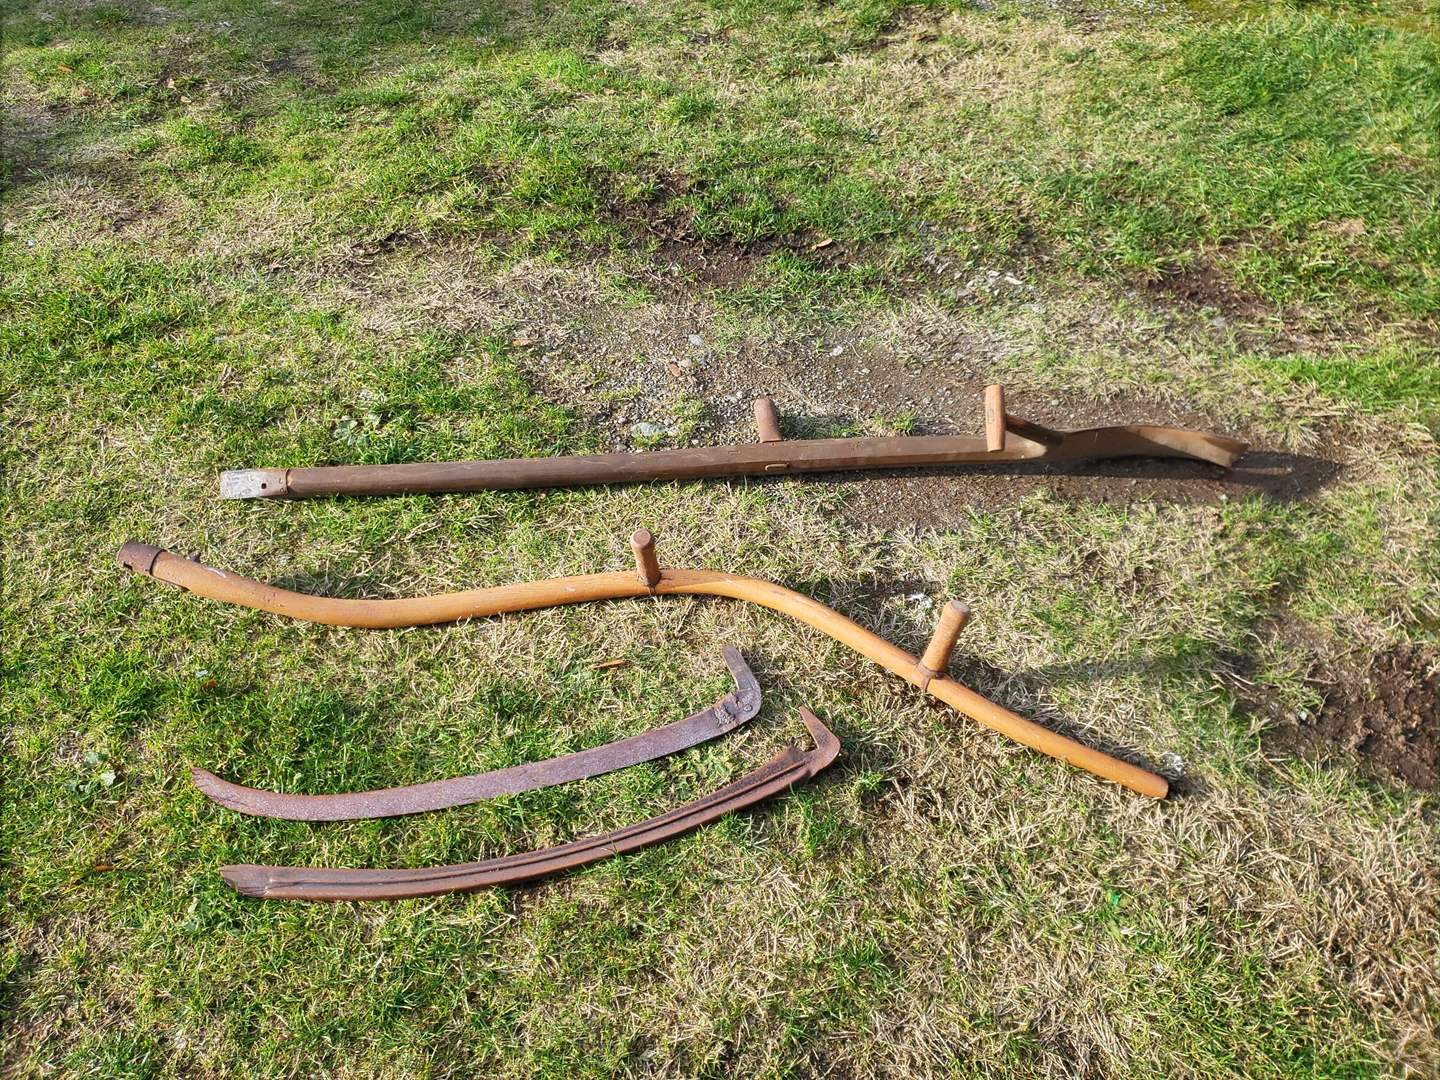 Lot # 27 - 2 Long Handle Rustic Antique Scythe Hay / Grass Sickle cutter Farm Tools (main image)